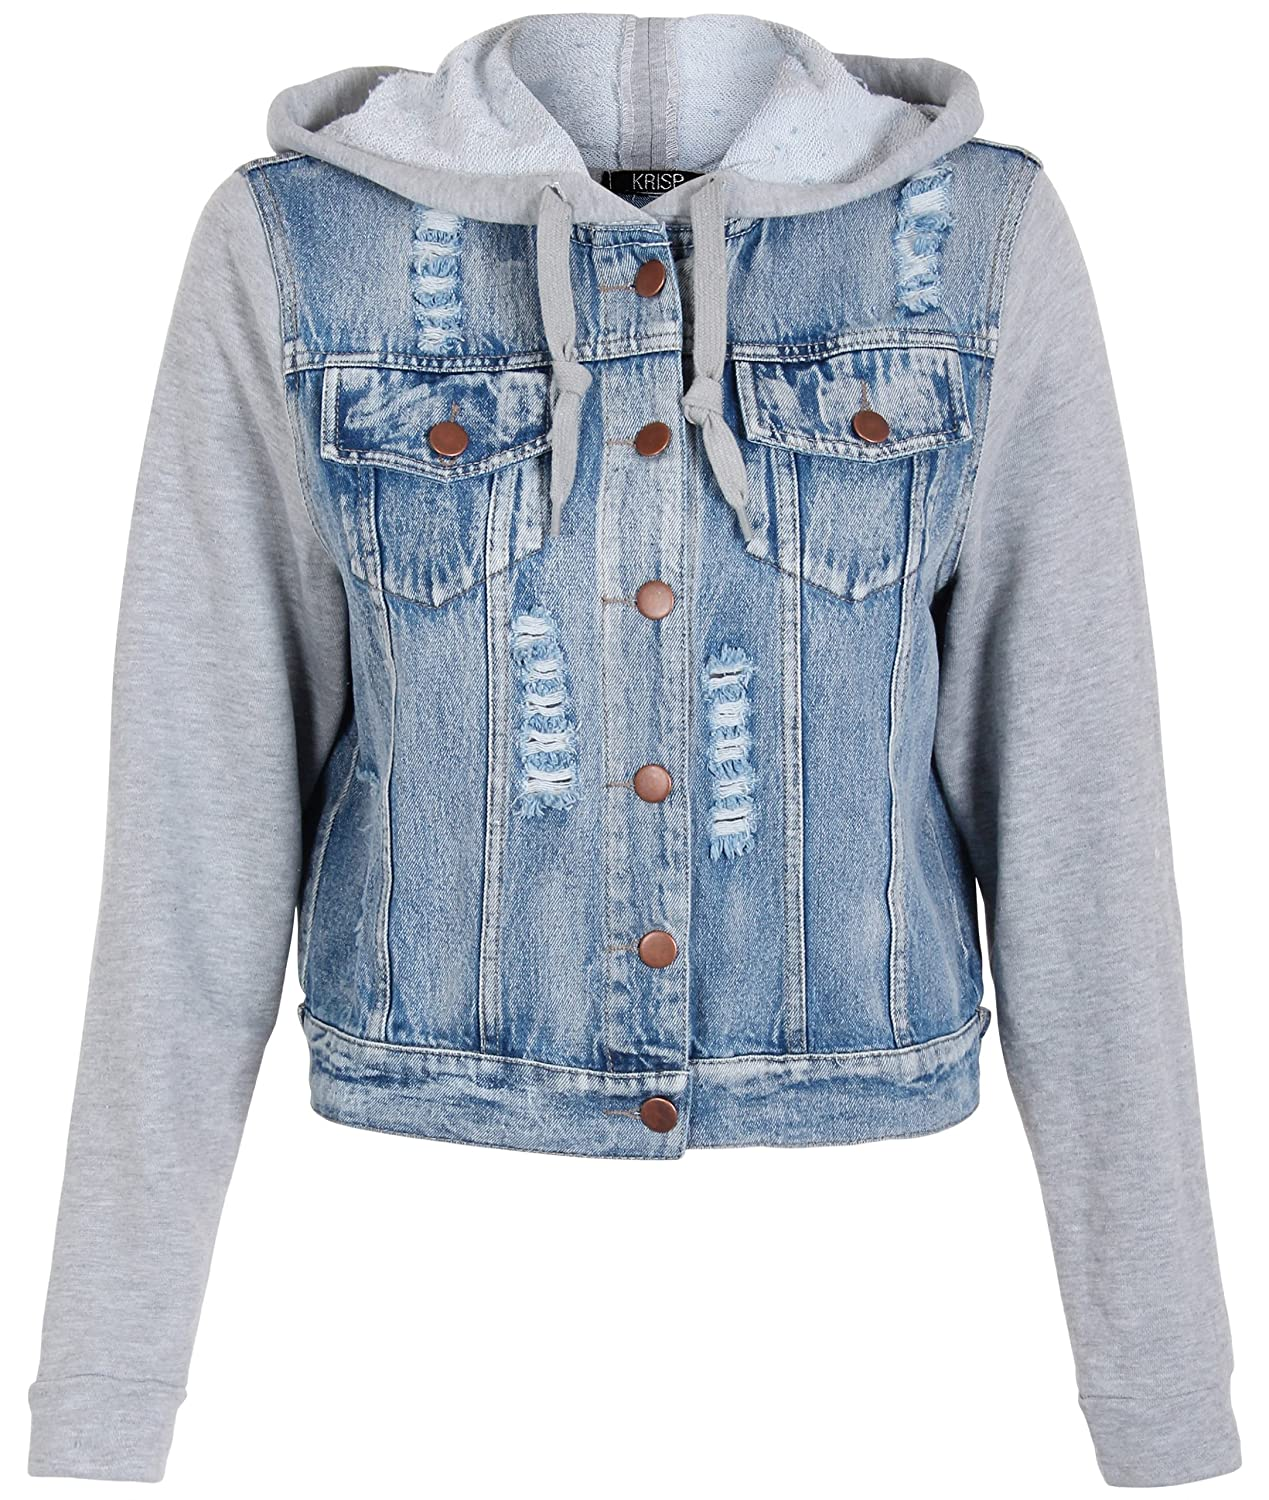 3882-BLUGRY-XS: Jersey Sleeve Hood Light Wash Frayed Ripped Jean ...